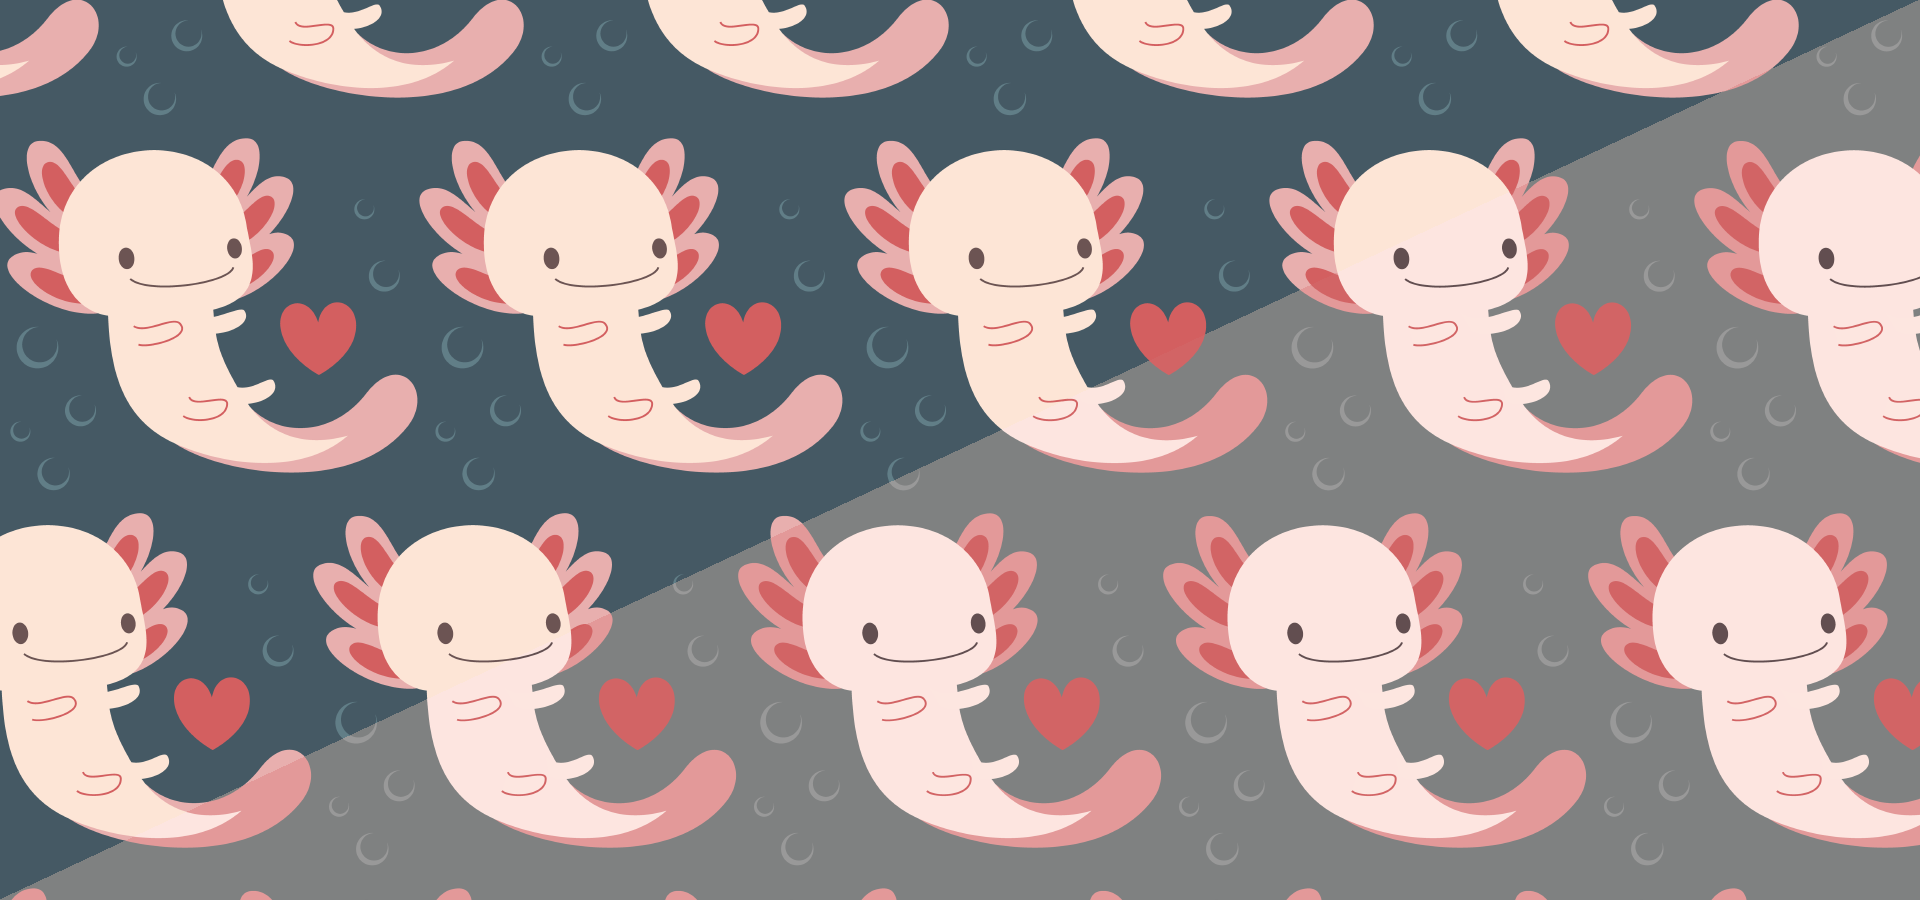 axolotls hearts bubbles pattern collection